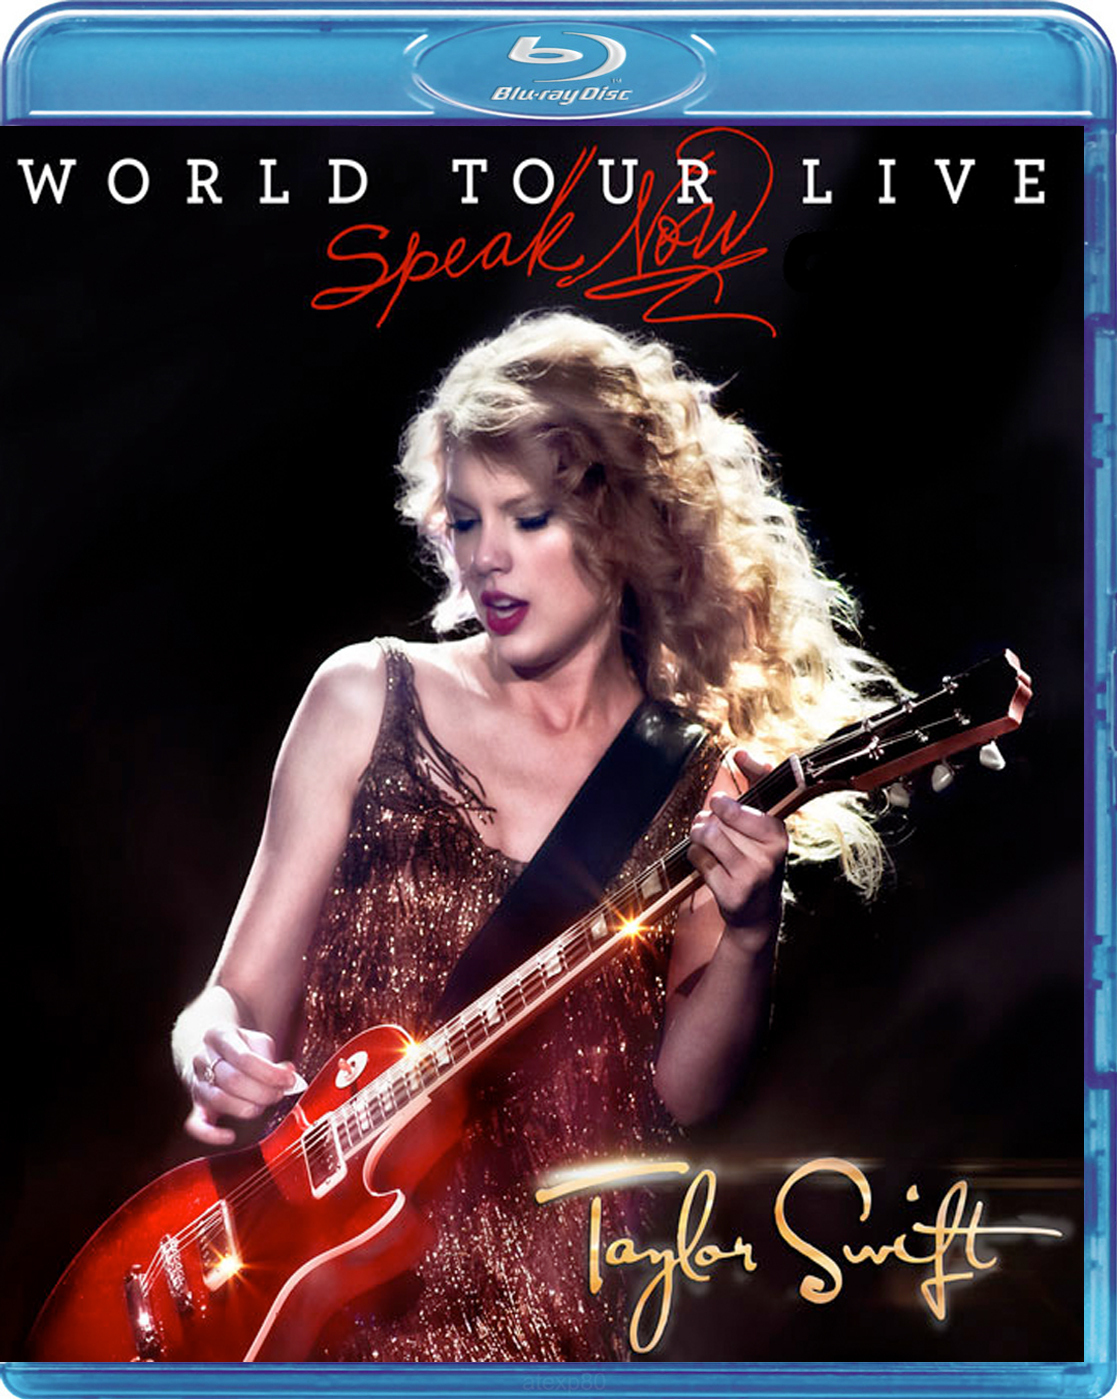 http://4.bp.blogspot.com/-cmIE1hjJY5M/Tt6jVgjq9AI/AAAAAAAABII/PgcTgUwcDLs/s1600/Taylor+Swift+-+Speak+Now+-+Wold+Tour.jpg